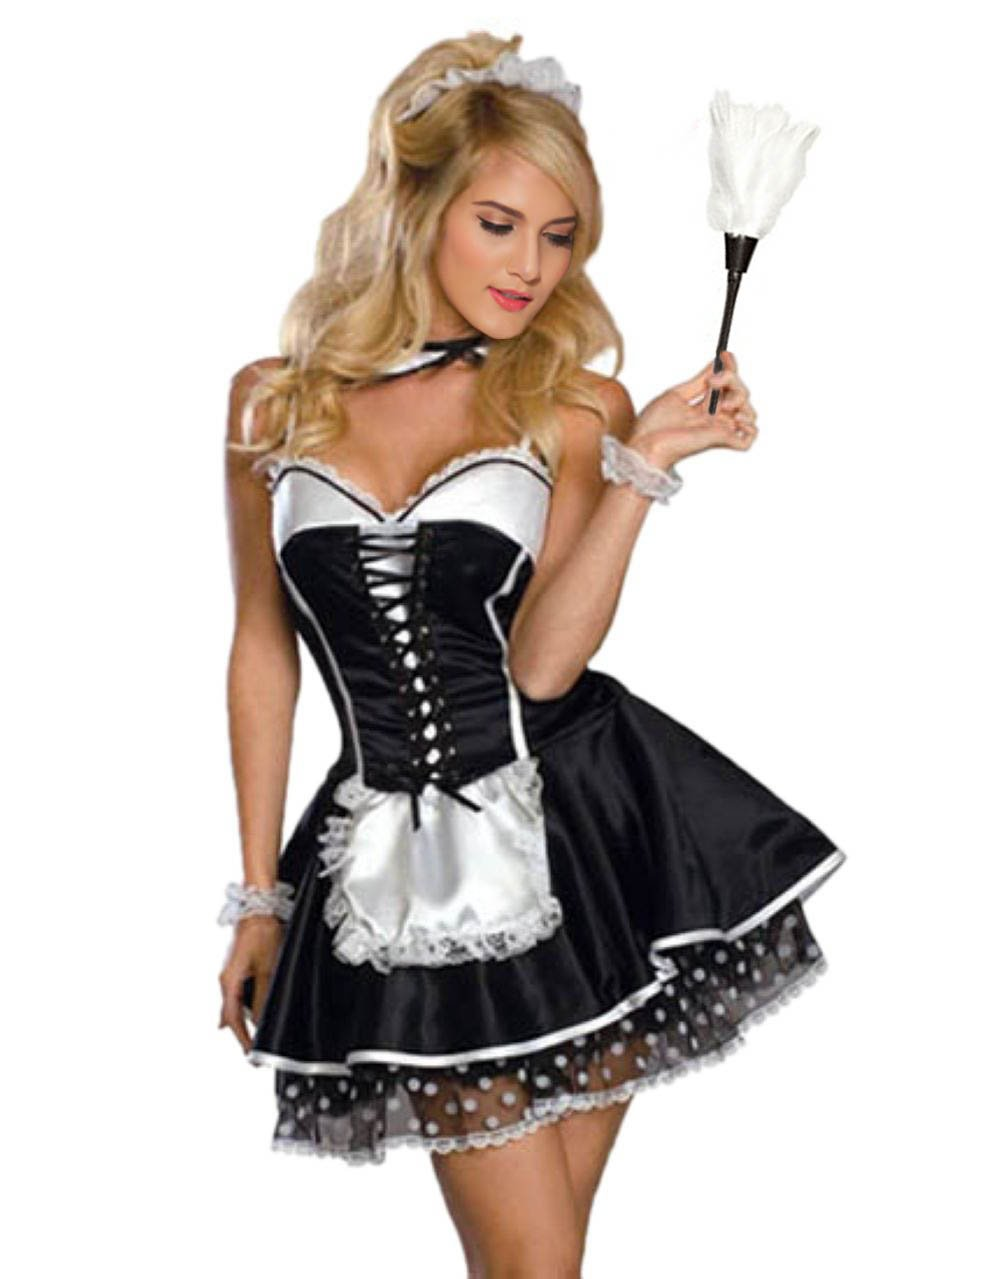 French Maid Costume - S- 2XL Women Sexy Naughty French Maid Fancy Dress Uniform for Halloween (XL)